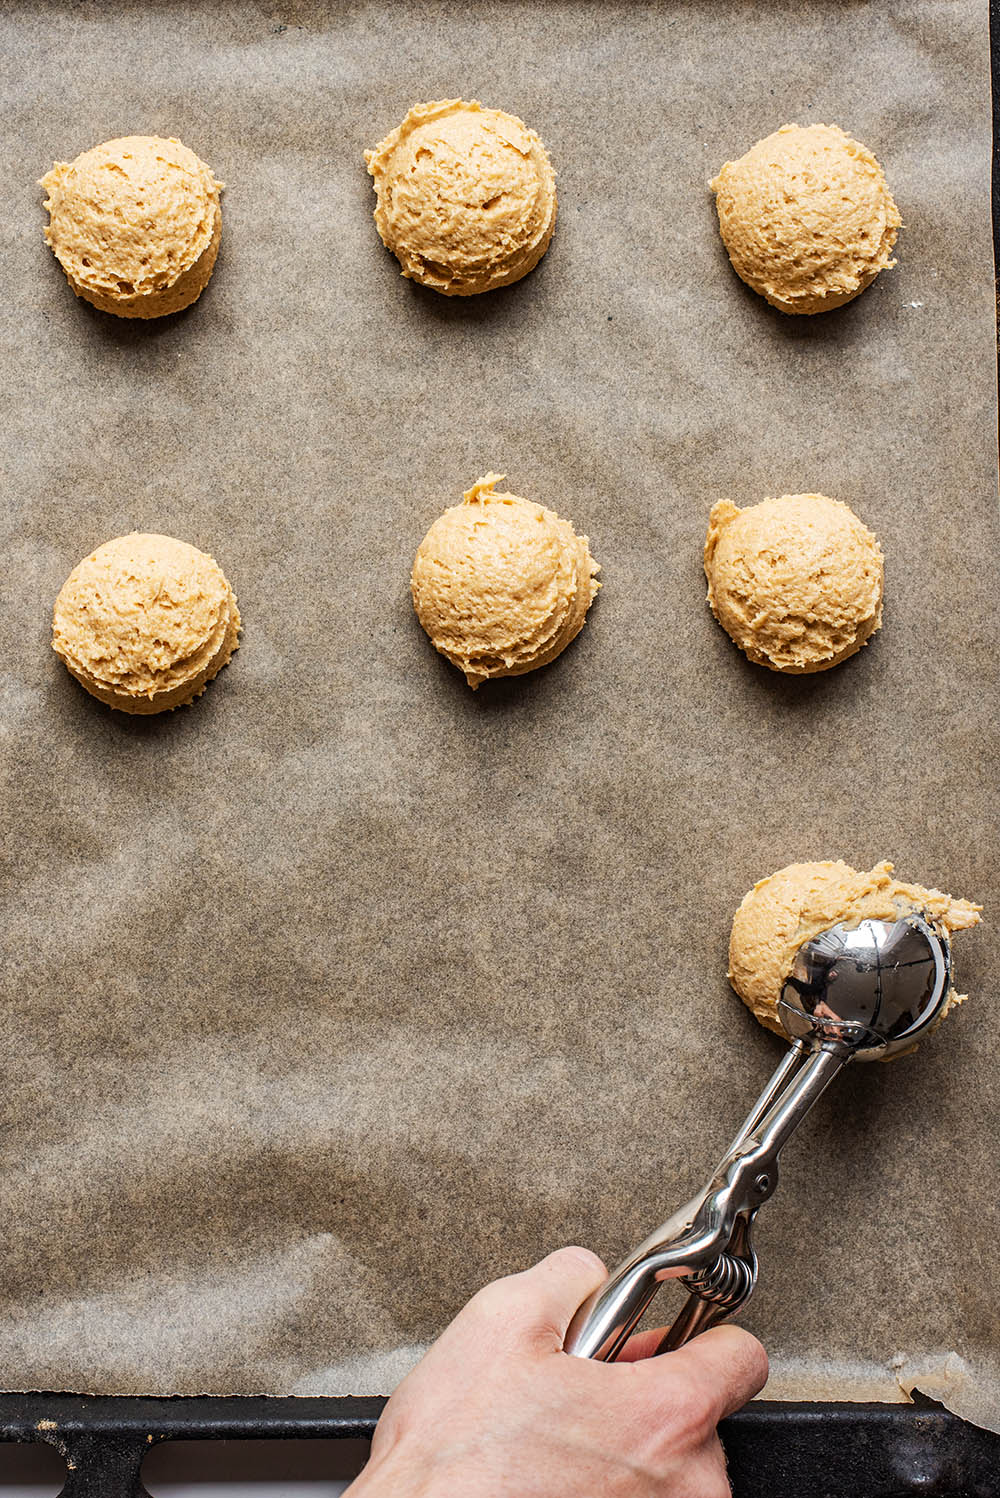 Cookies being scooped onto a lined baking sheet.